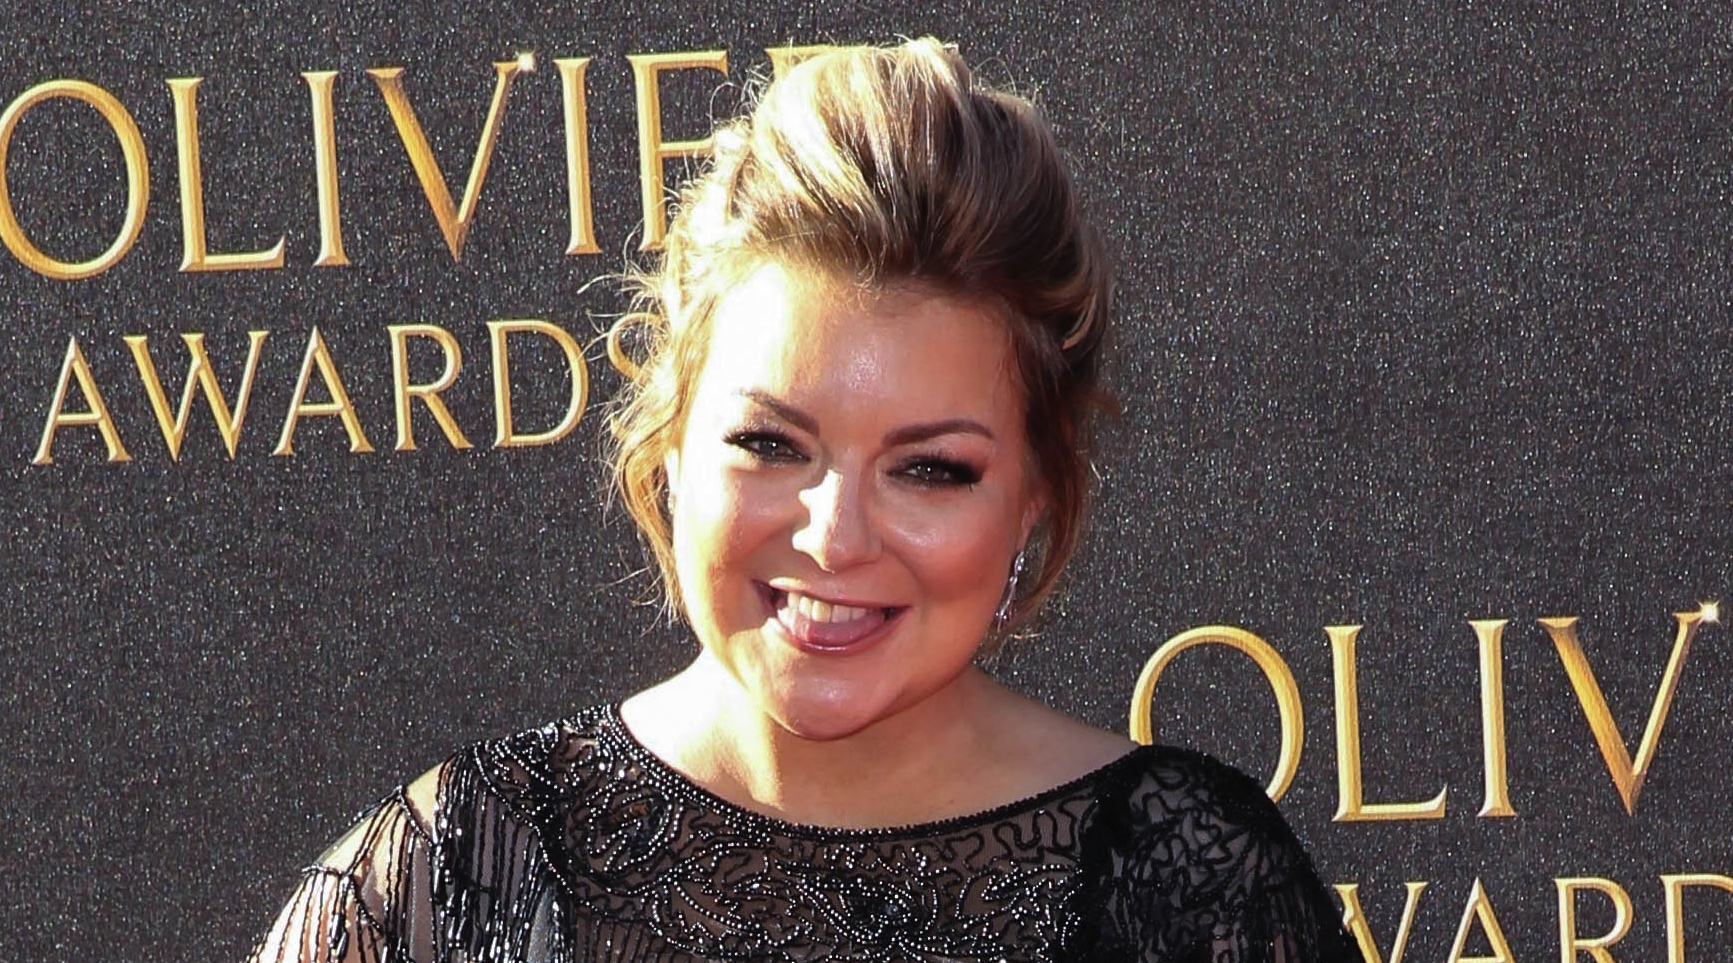 Sheridan Smith says she wants to start a family with fiancé